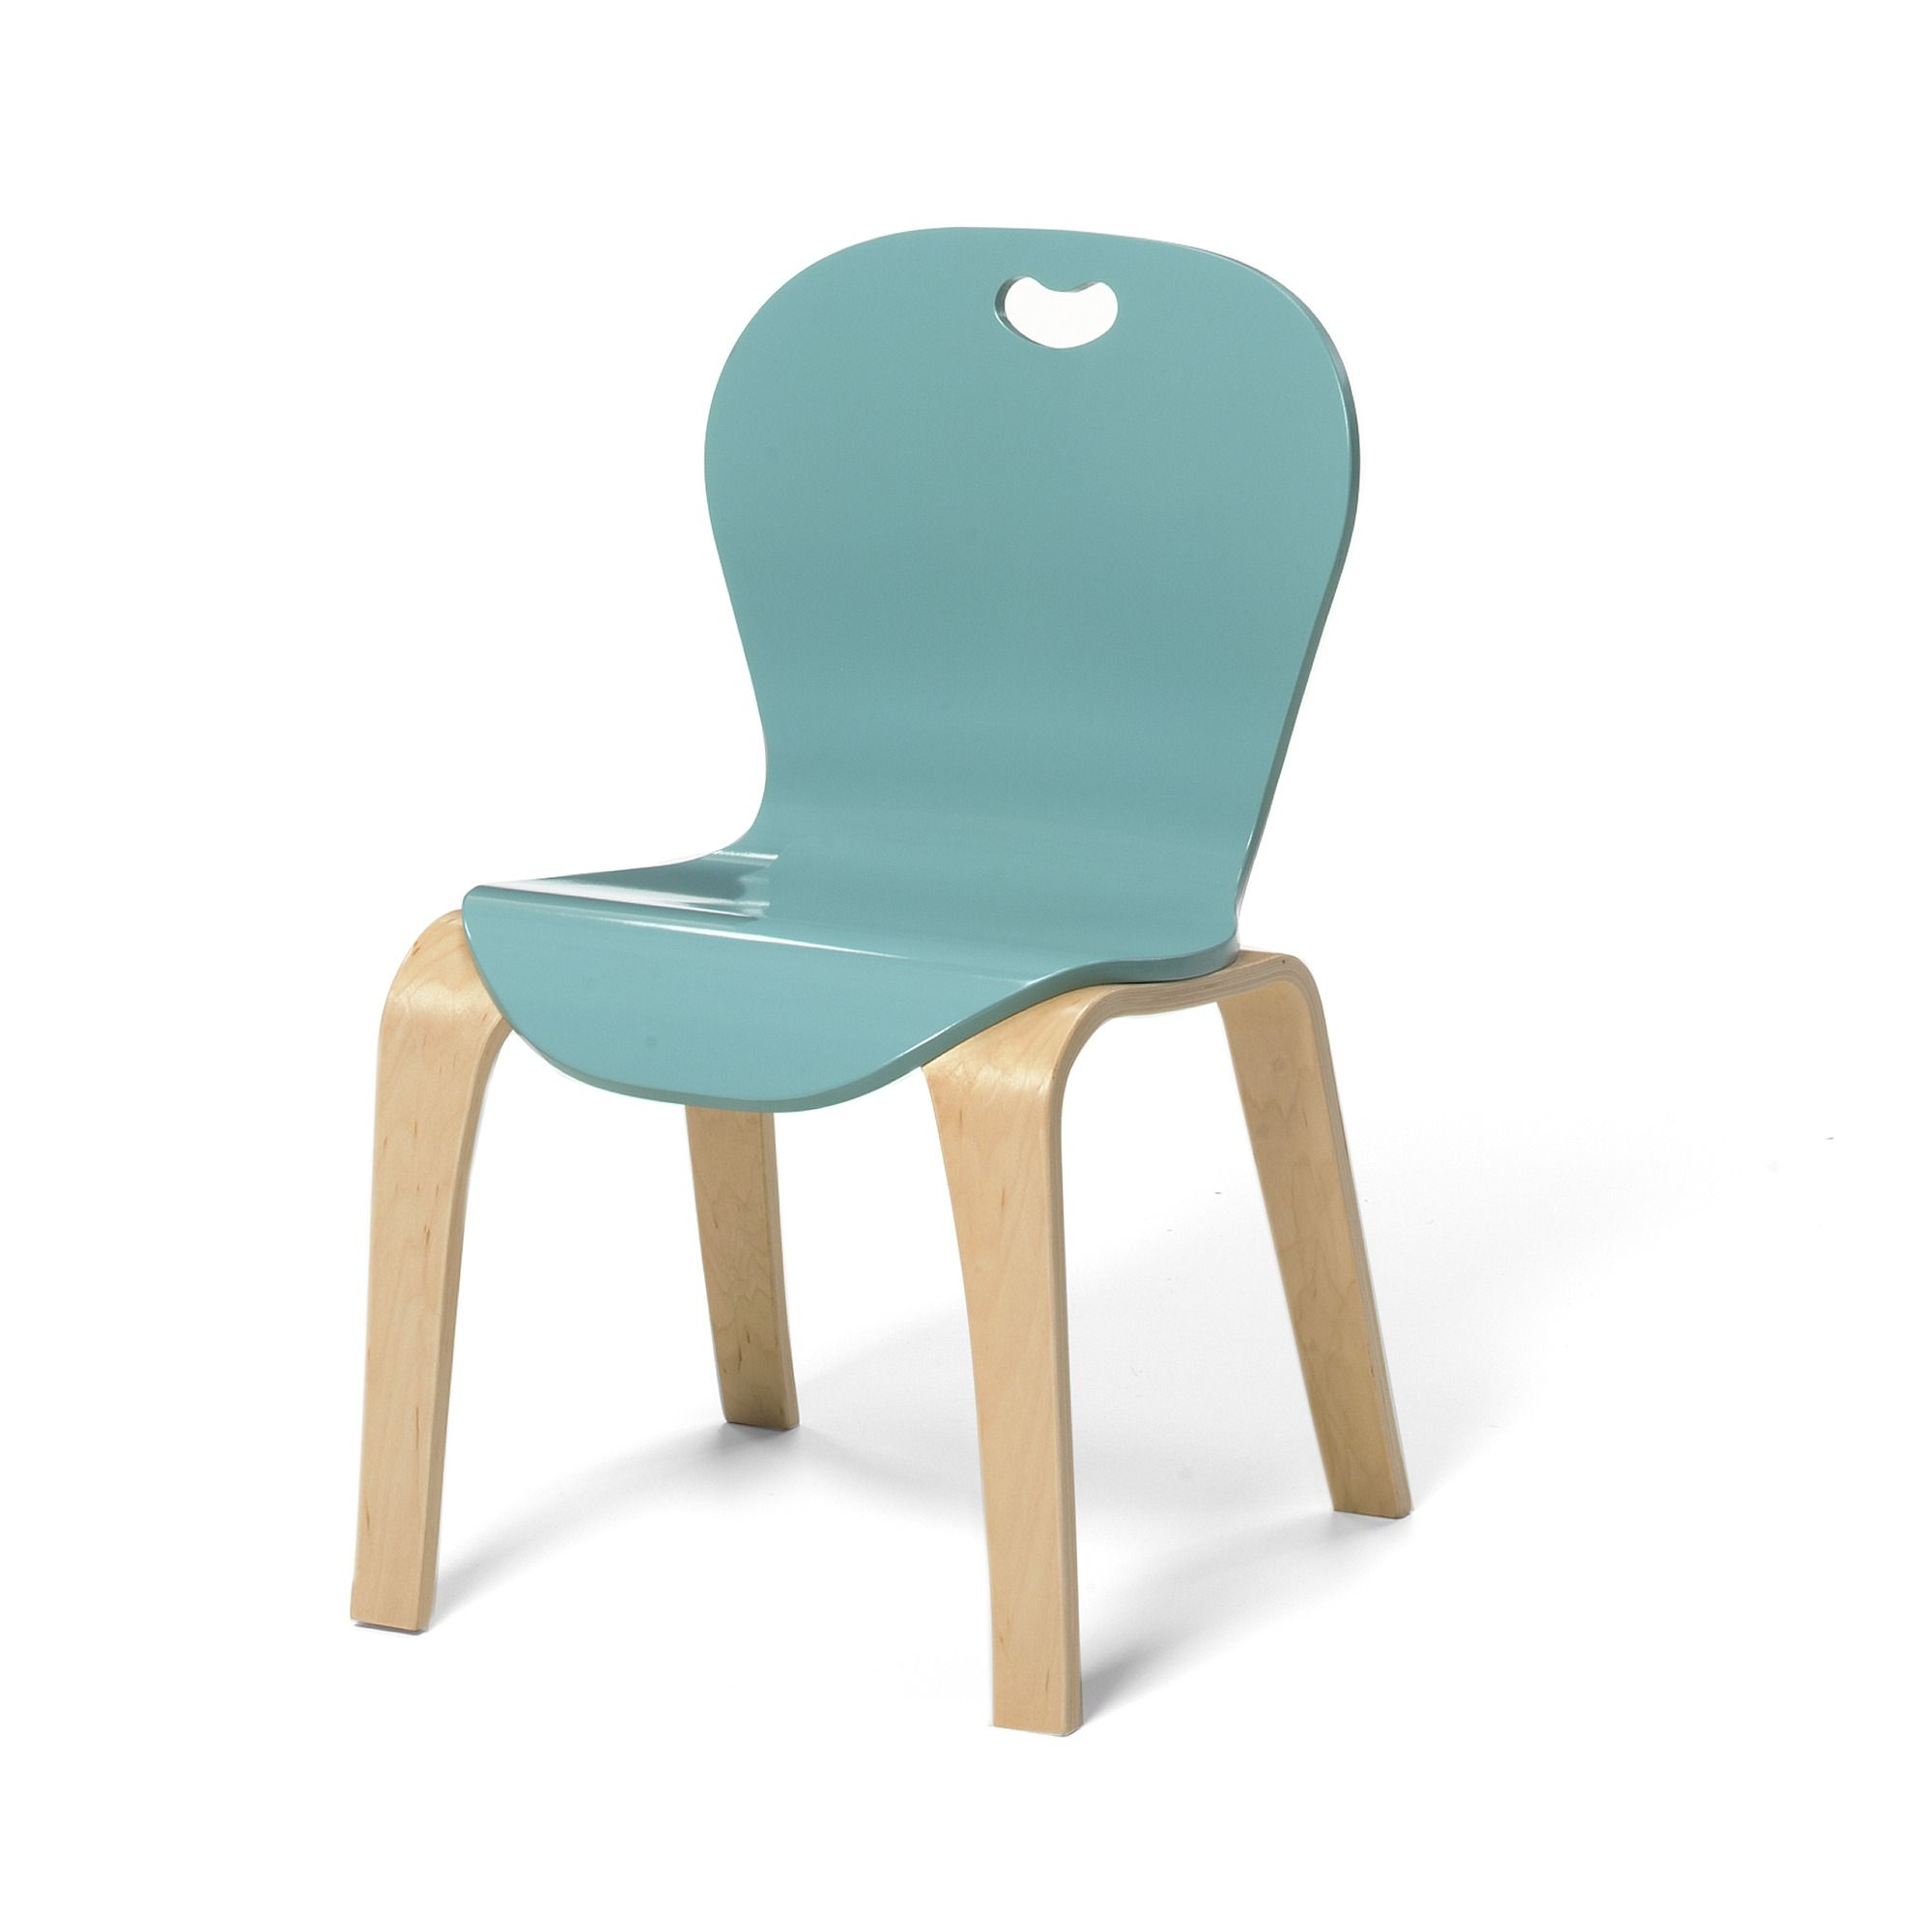 ll sporren blue chair office products egg in vissle you gb stools light seating adjustable rfj white height en the sit is ikea since swivel comfortably chairs benches